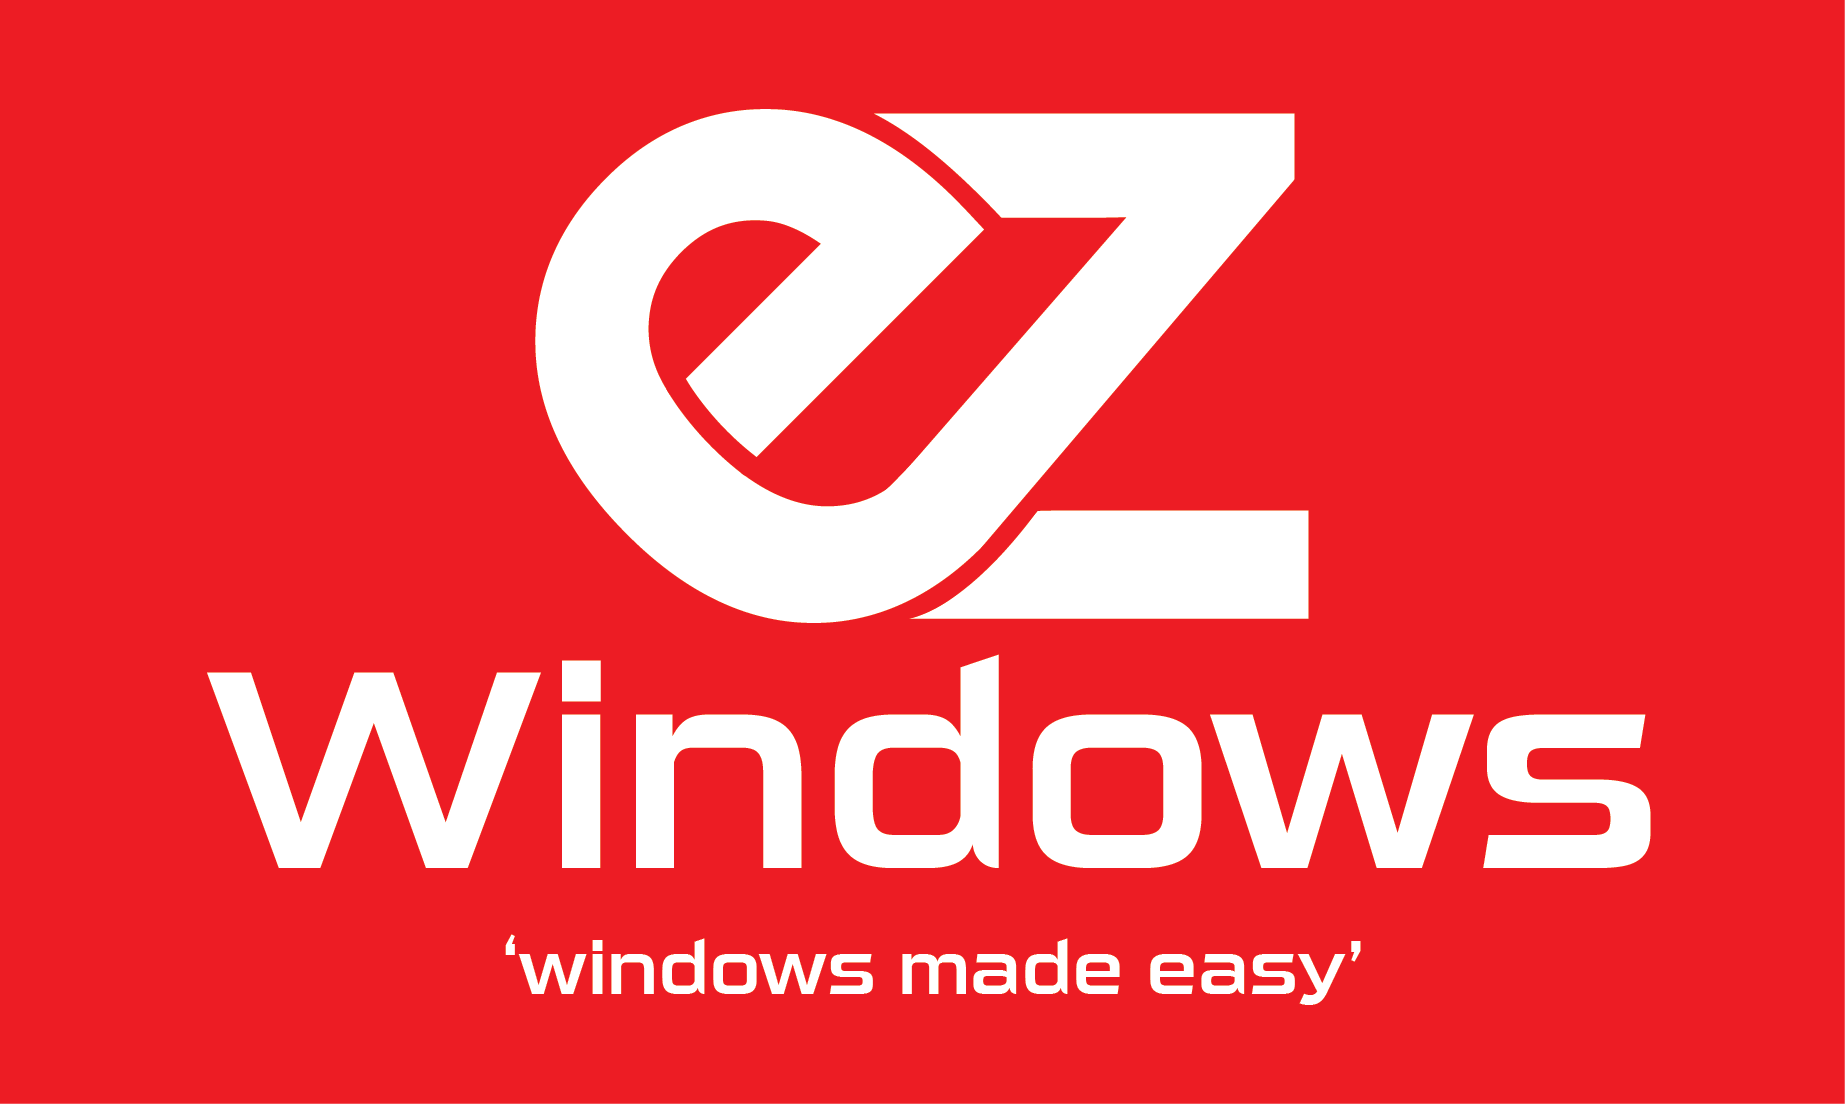 EZ windows made easy